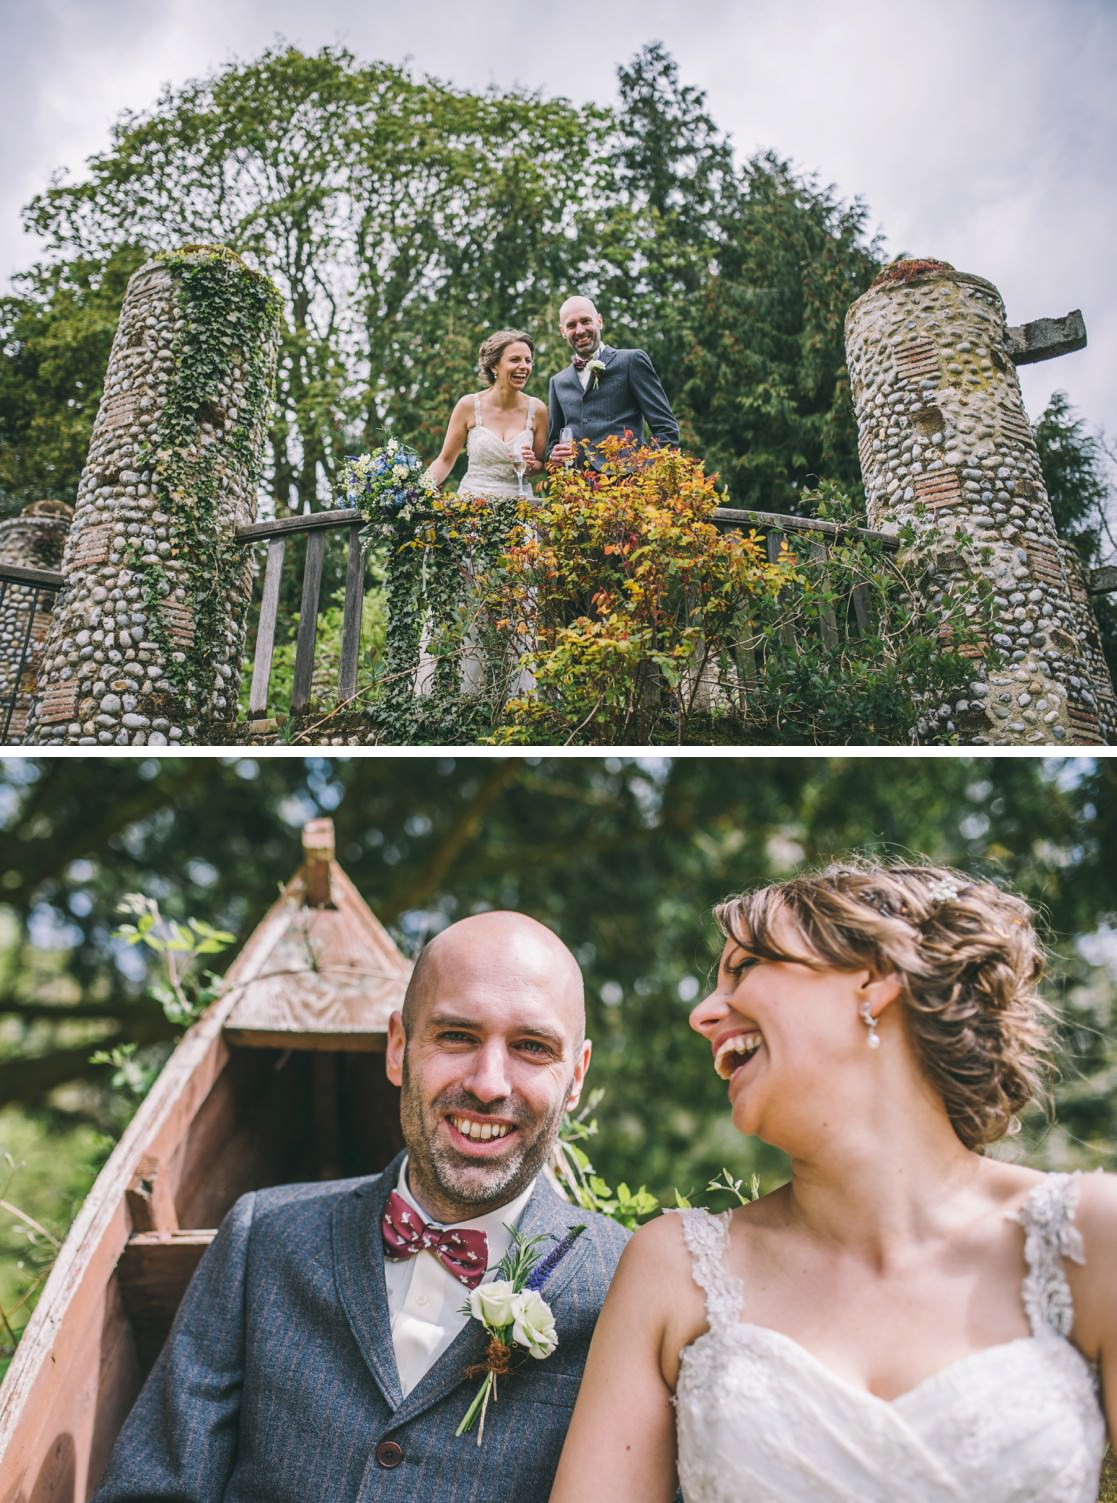 Paul-And-Hannah-Voewood-House-Wedding-By-Norfolk-And-Suffolk-Wedding-Photographer-James-Powell-Photography_0108.jpg